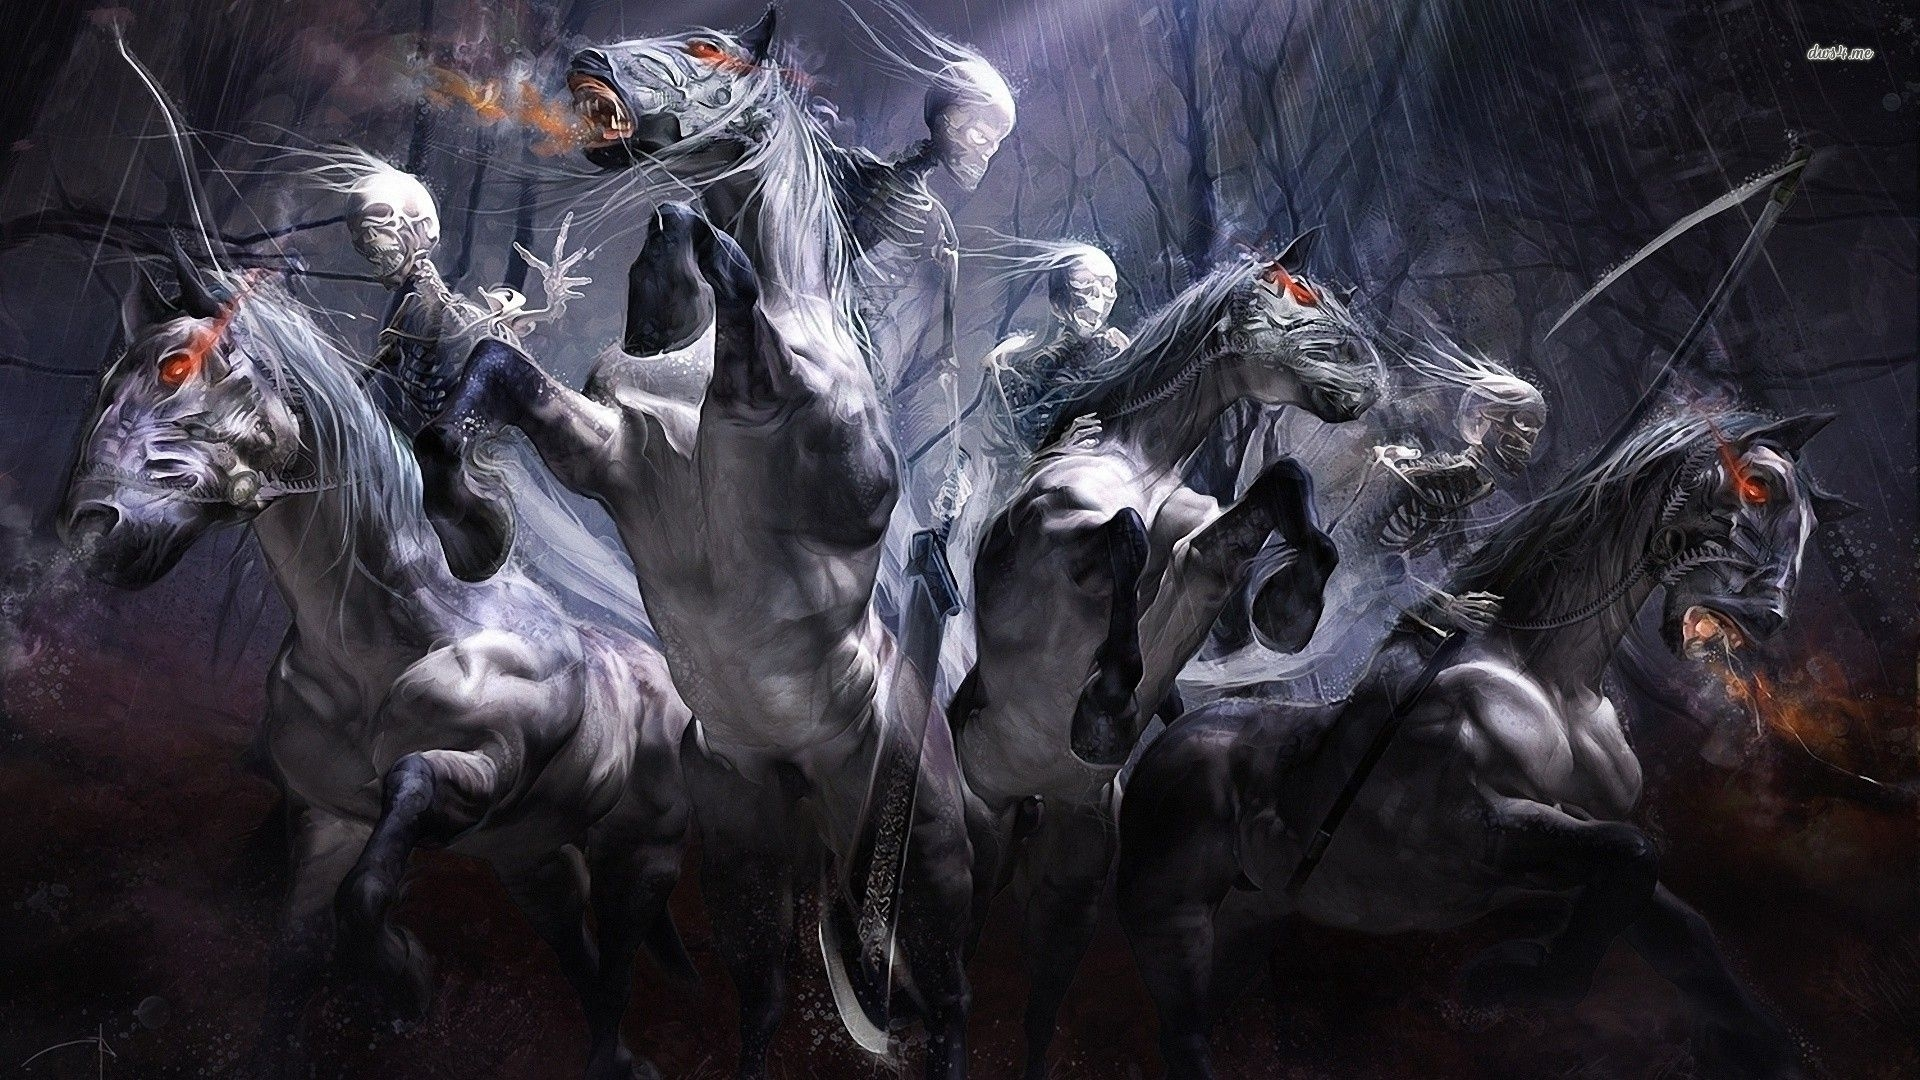 four horsemen war | four horsemen of the apocalypse wallpaper